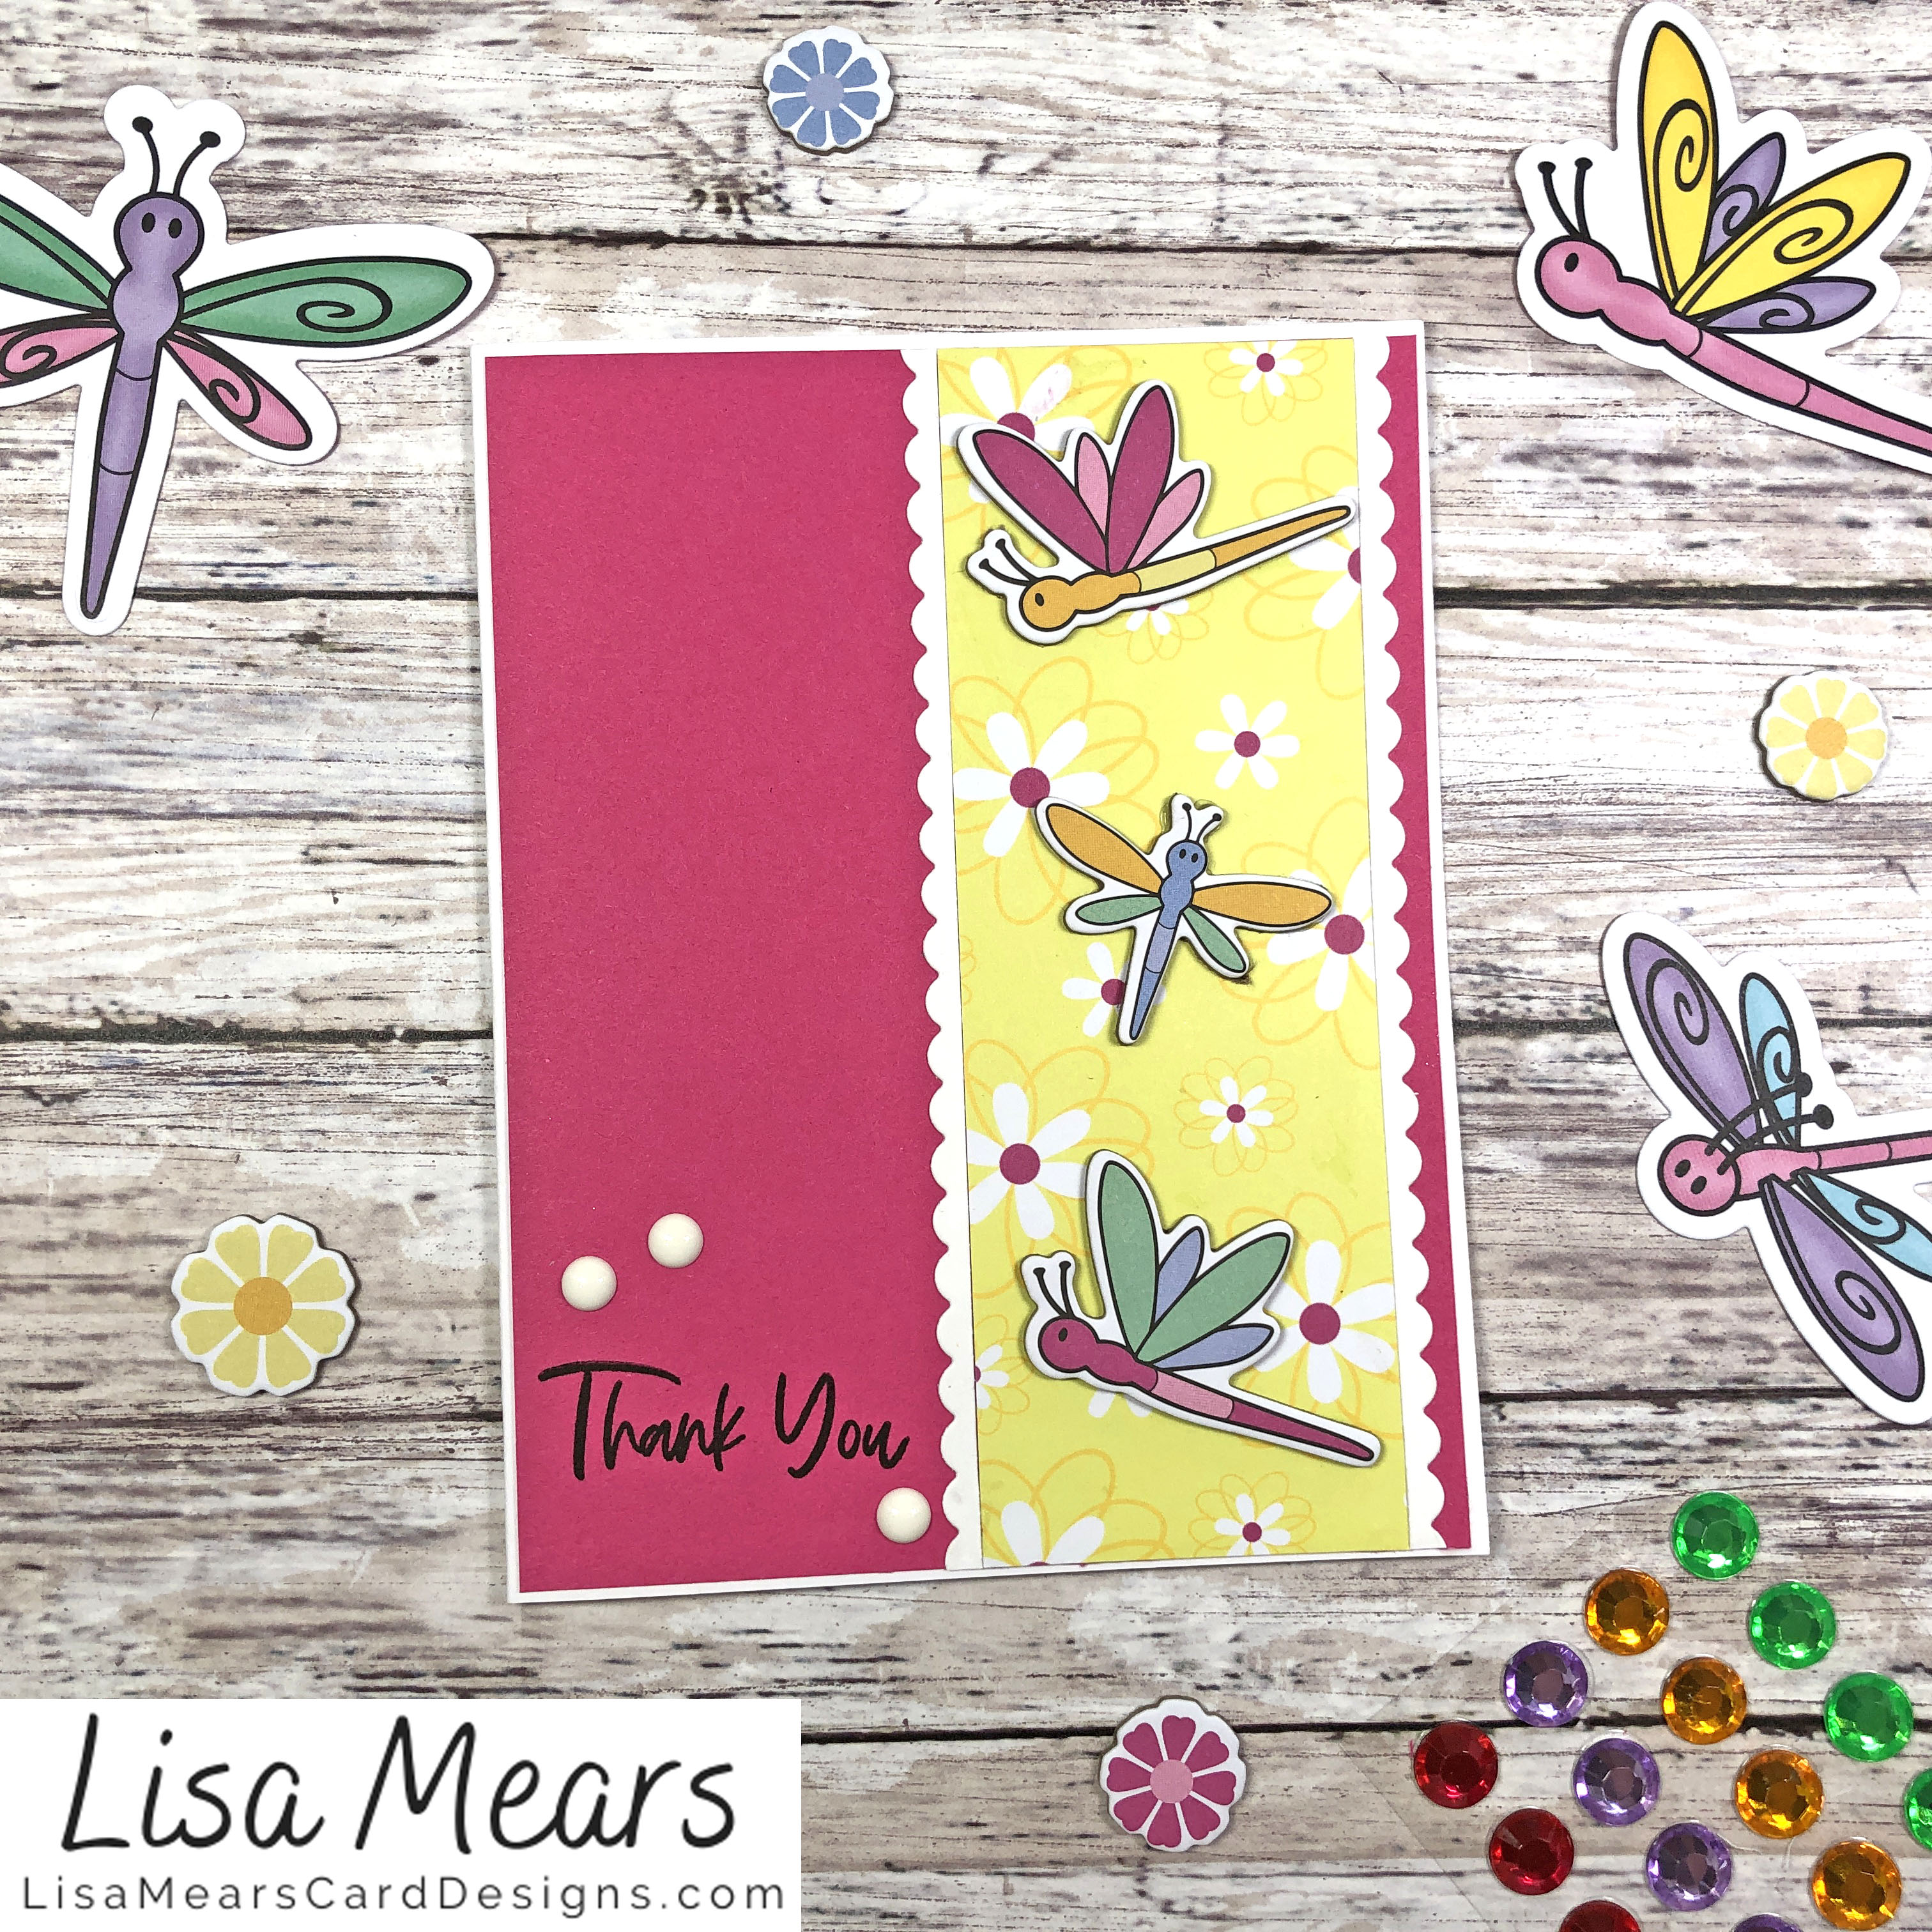 The Stamps of Life February Card Kit - 10 Cards 1 Kit